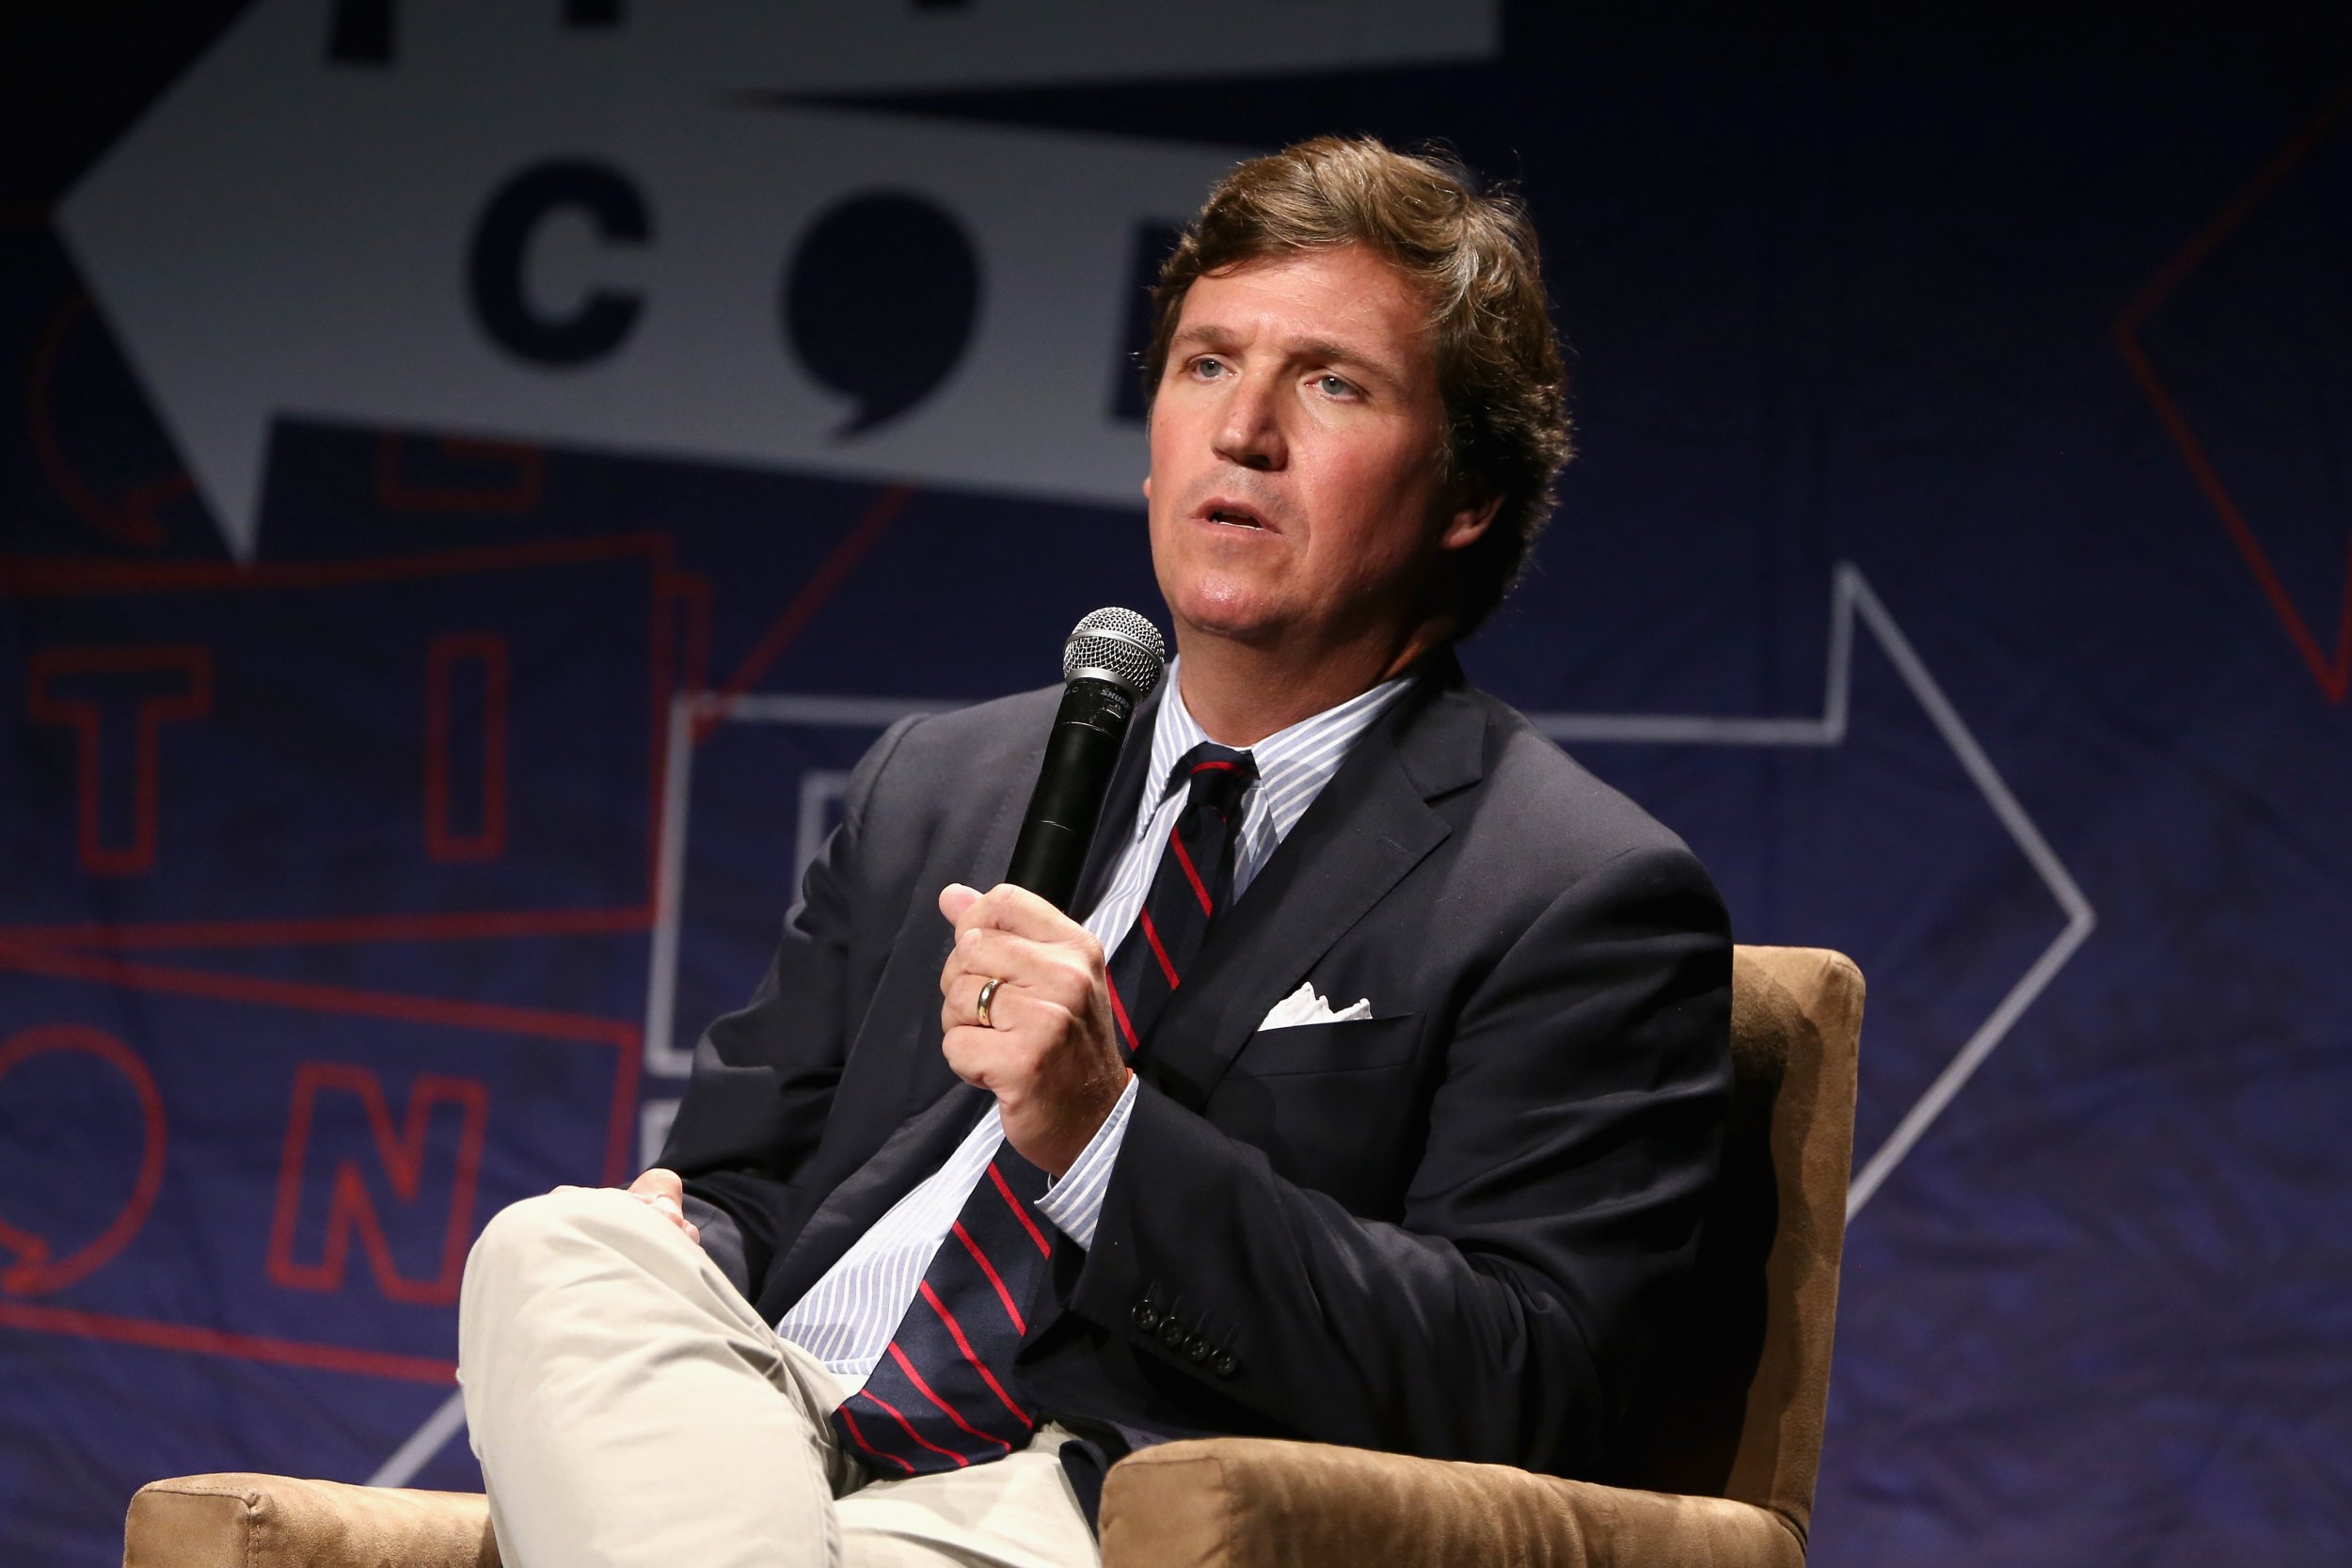 Tucker Carlson backlash jeopardizes Fox News ad revenue